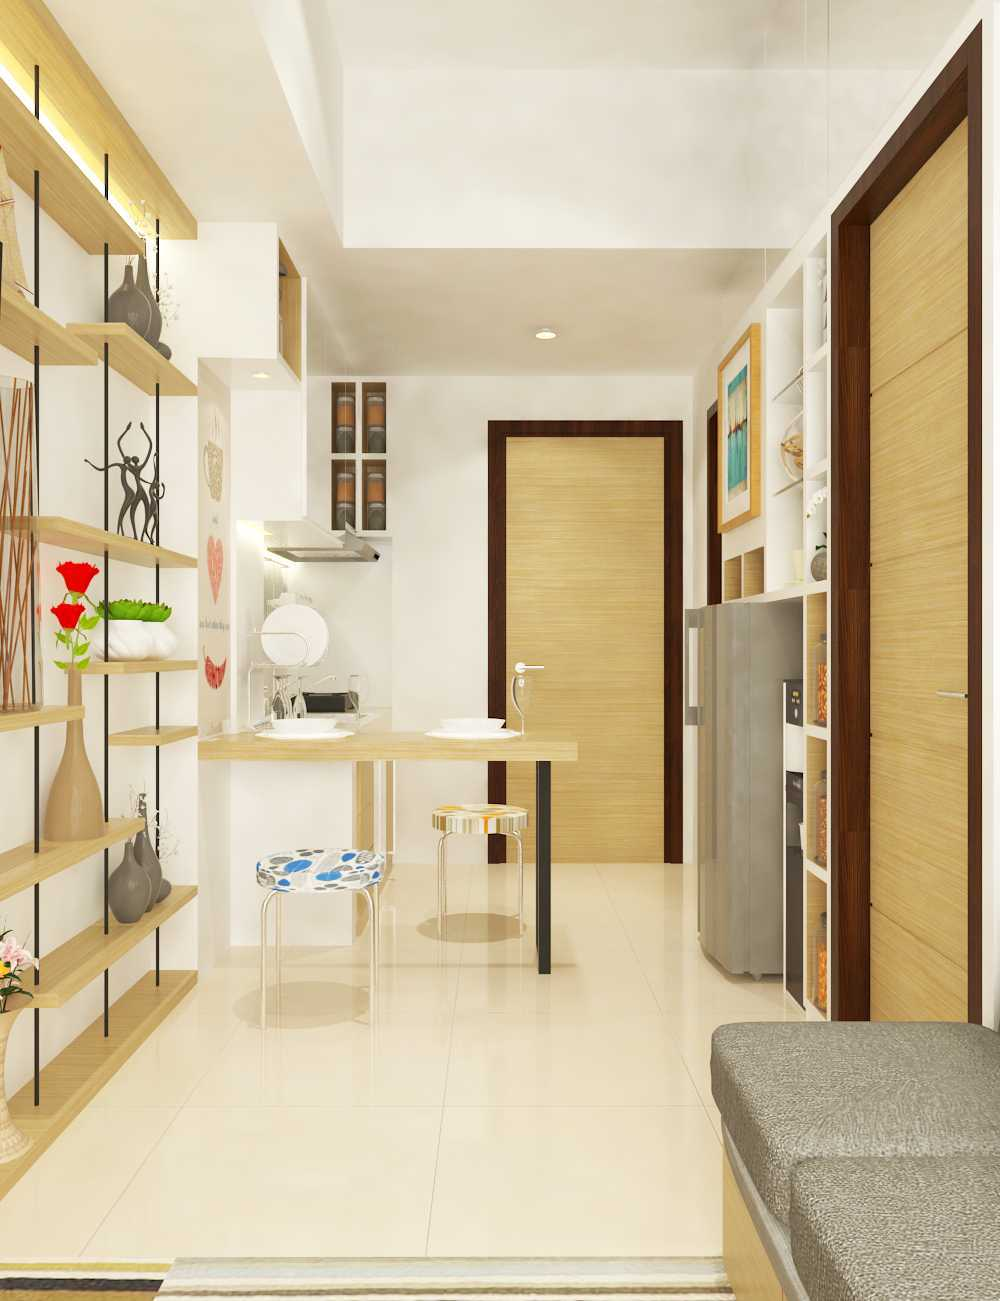 Miv Architects (Ar. Muhammad Ikhsan Hamiru, Iai & Partners) Interior Design Of Apartment Unit Makassar, South Sulawesi, Indonesia Makassar, South Sulawesi, Indonesia Apartment Room Design Skandinavia 29139